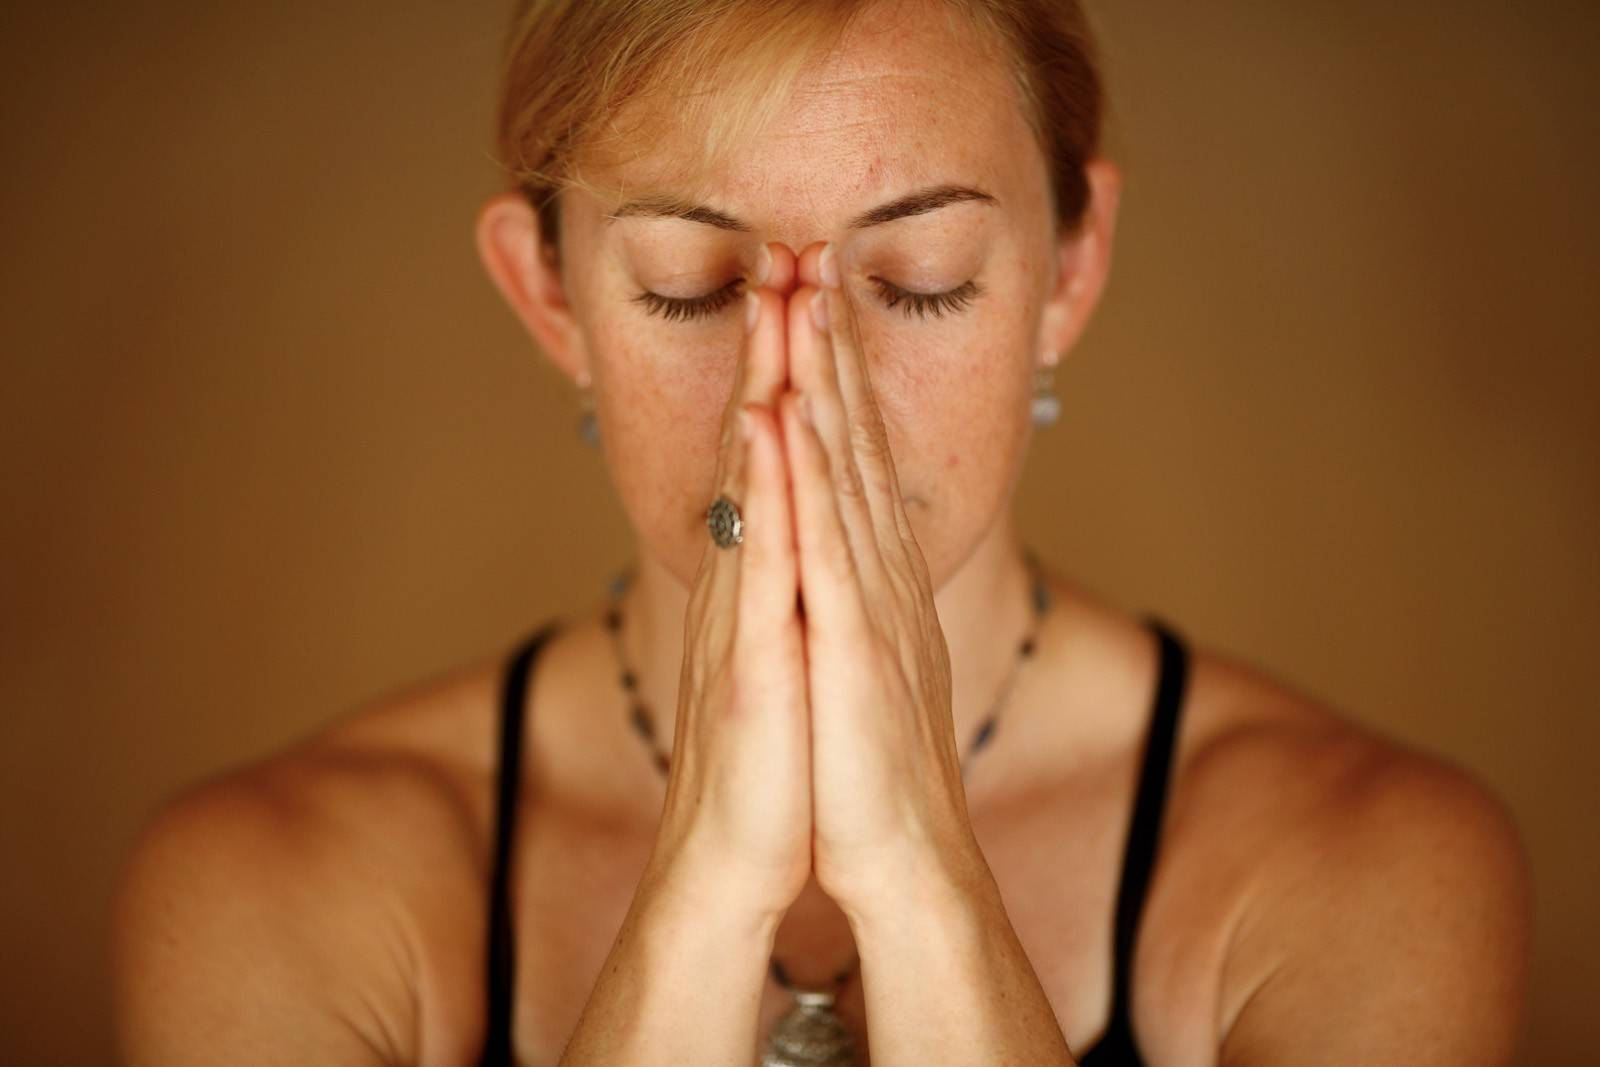 Meditation may help alleviate chronic pain, study shows